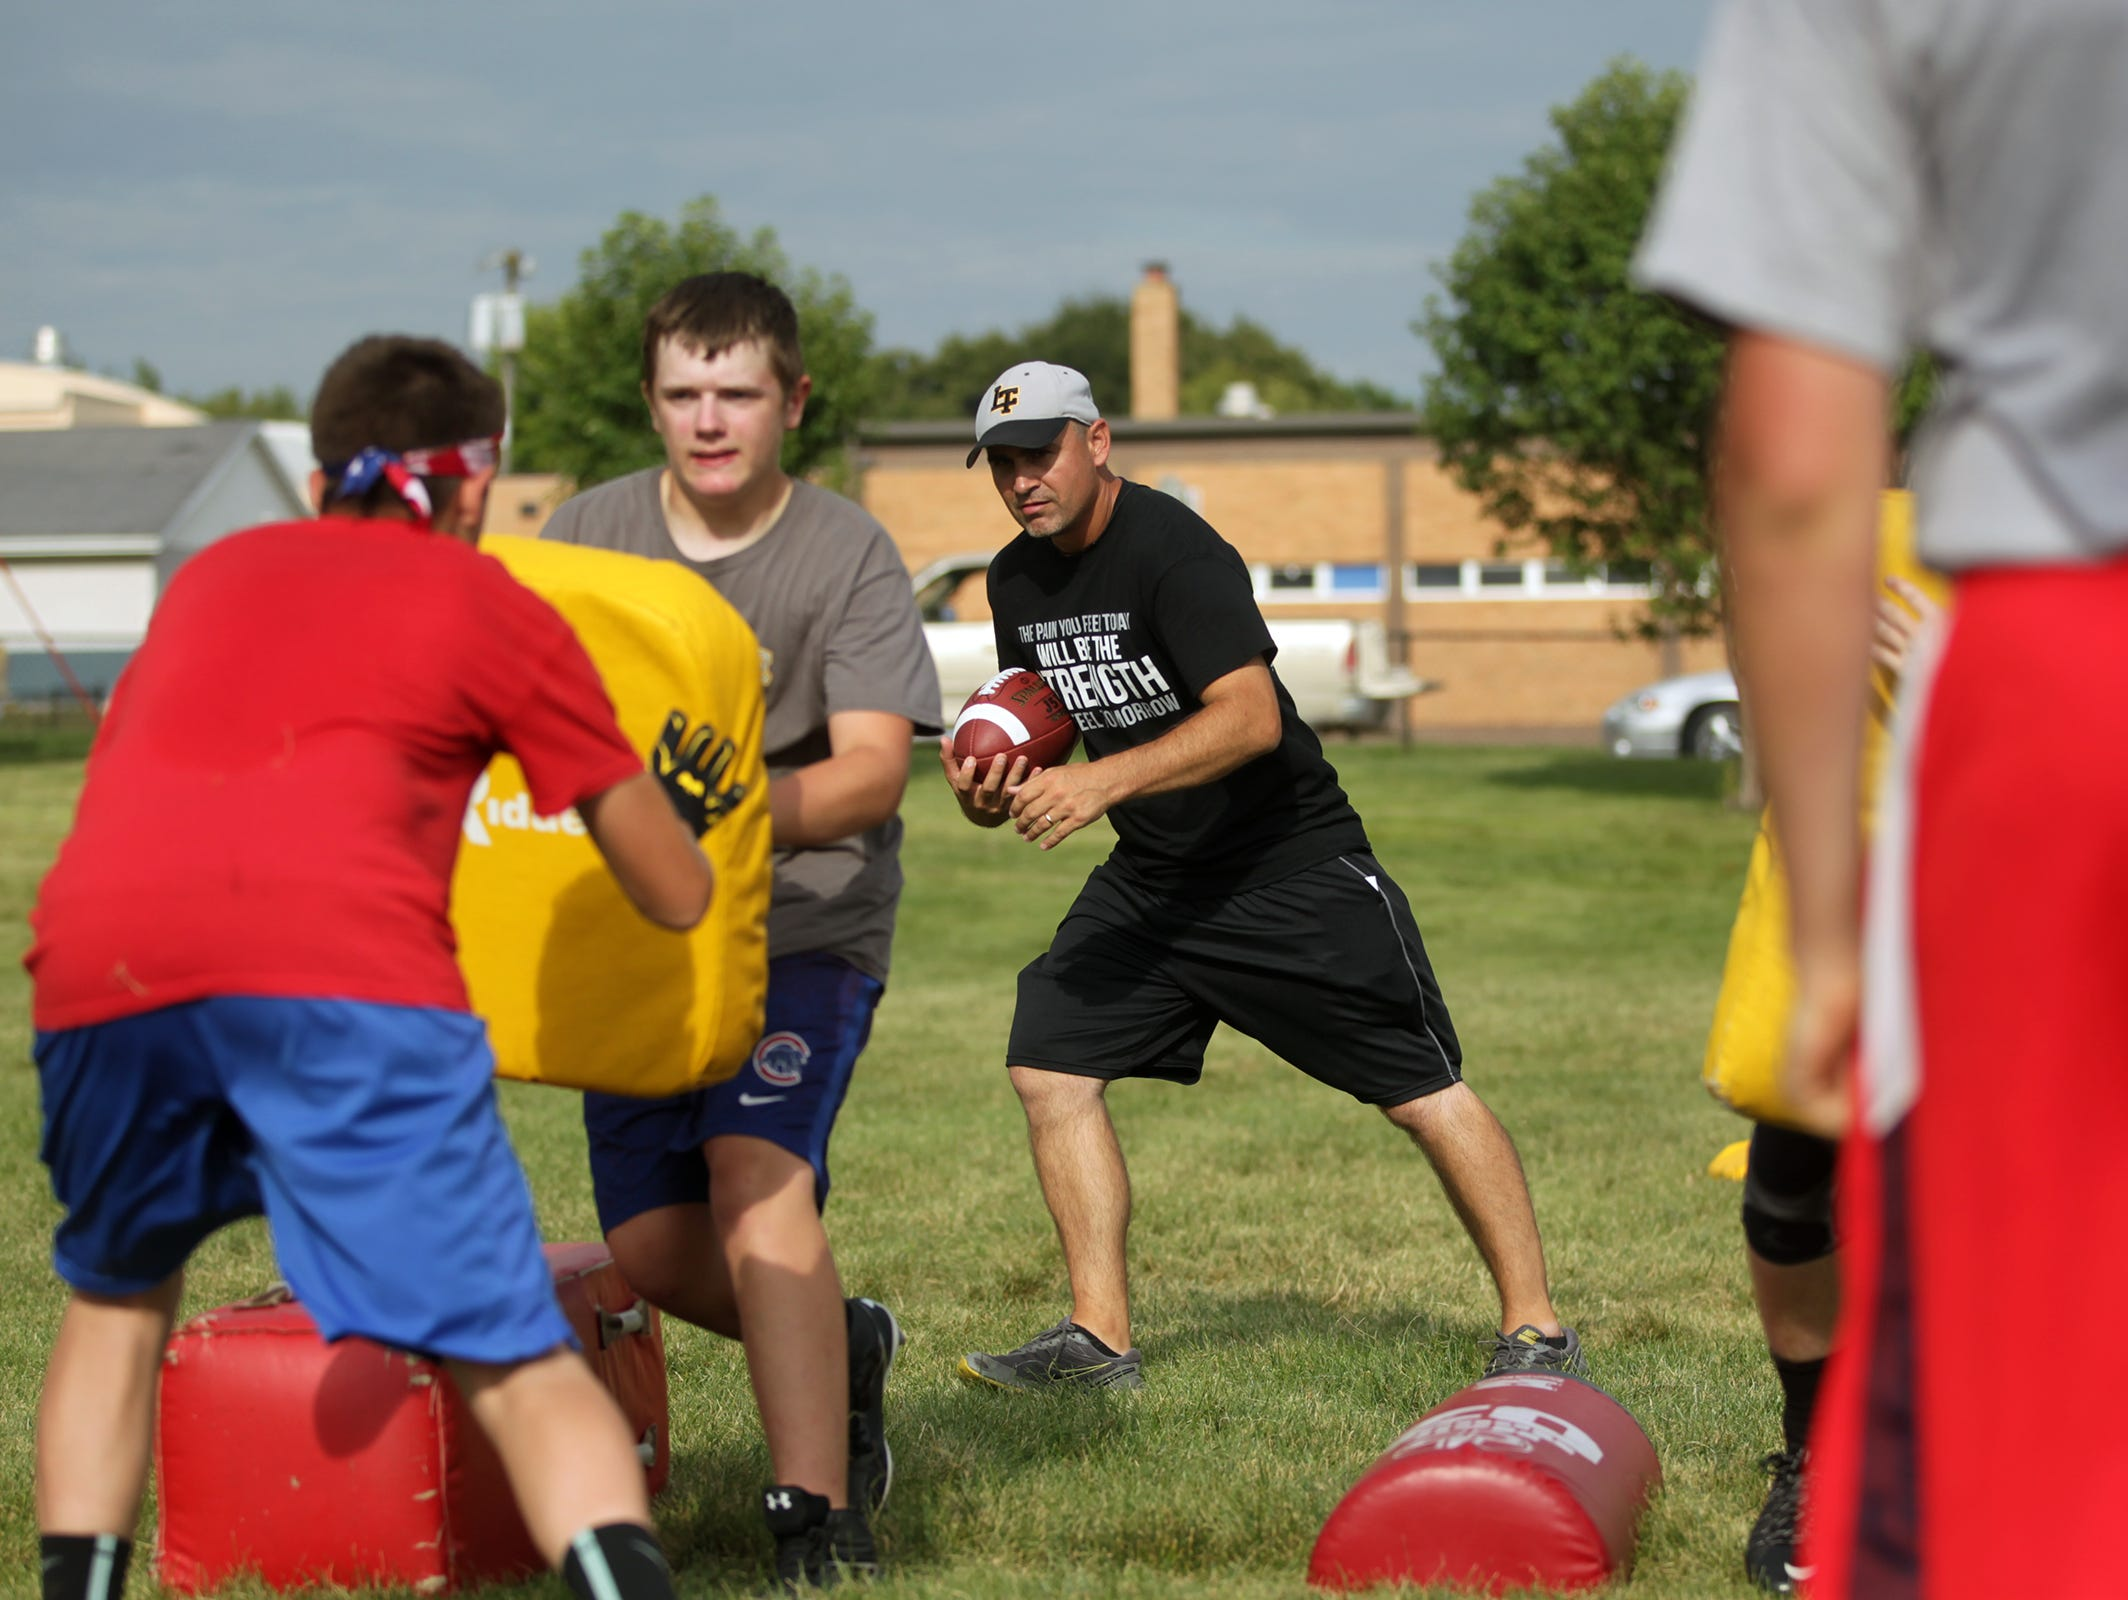 Lone Tree head coach Chad Shield works with his team on Thursday, Aug. 6, 2015. David Scrivner / Iowa City Press-Citizen